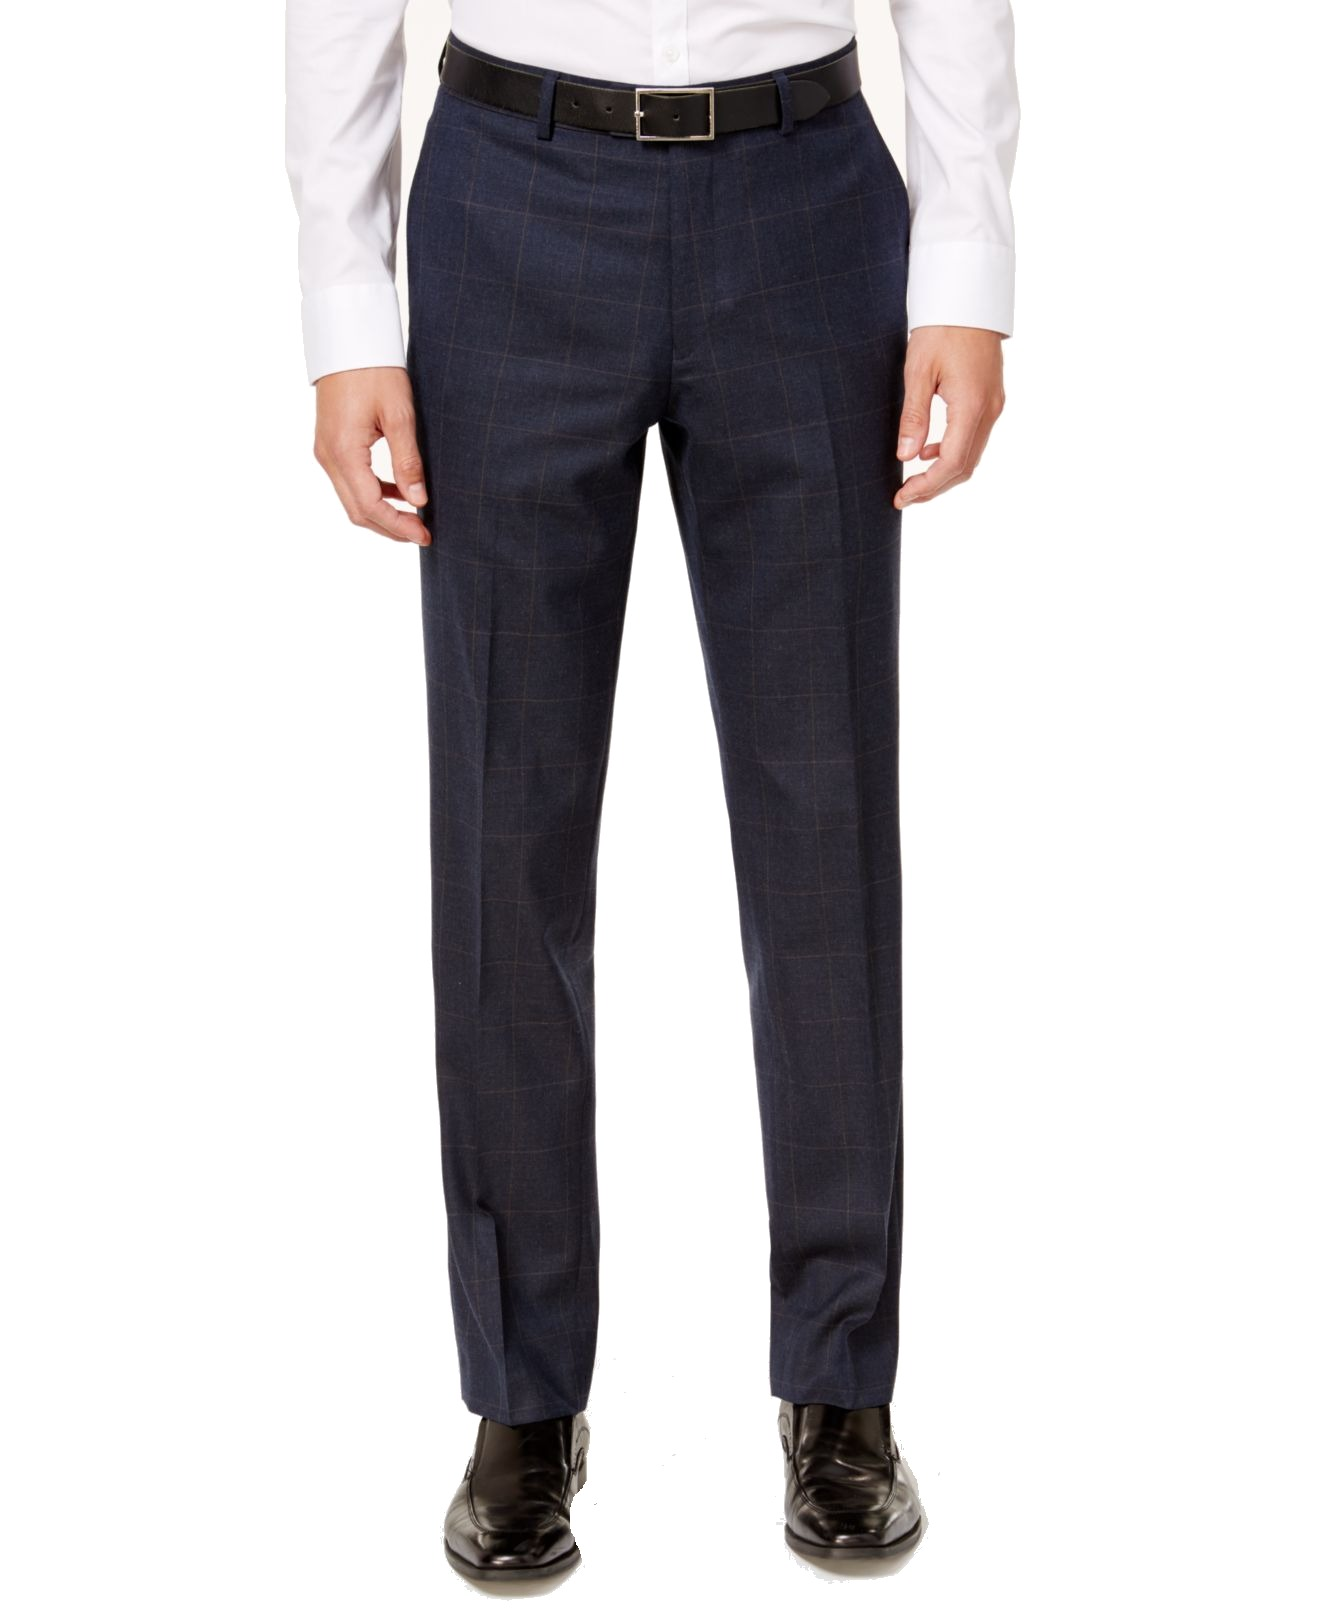 Blue Mens 32X32 Slim Plaid Dress - Flat Front Wool Pants $175 32